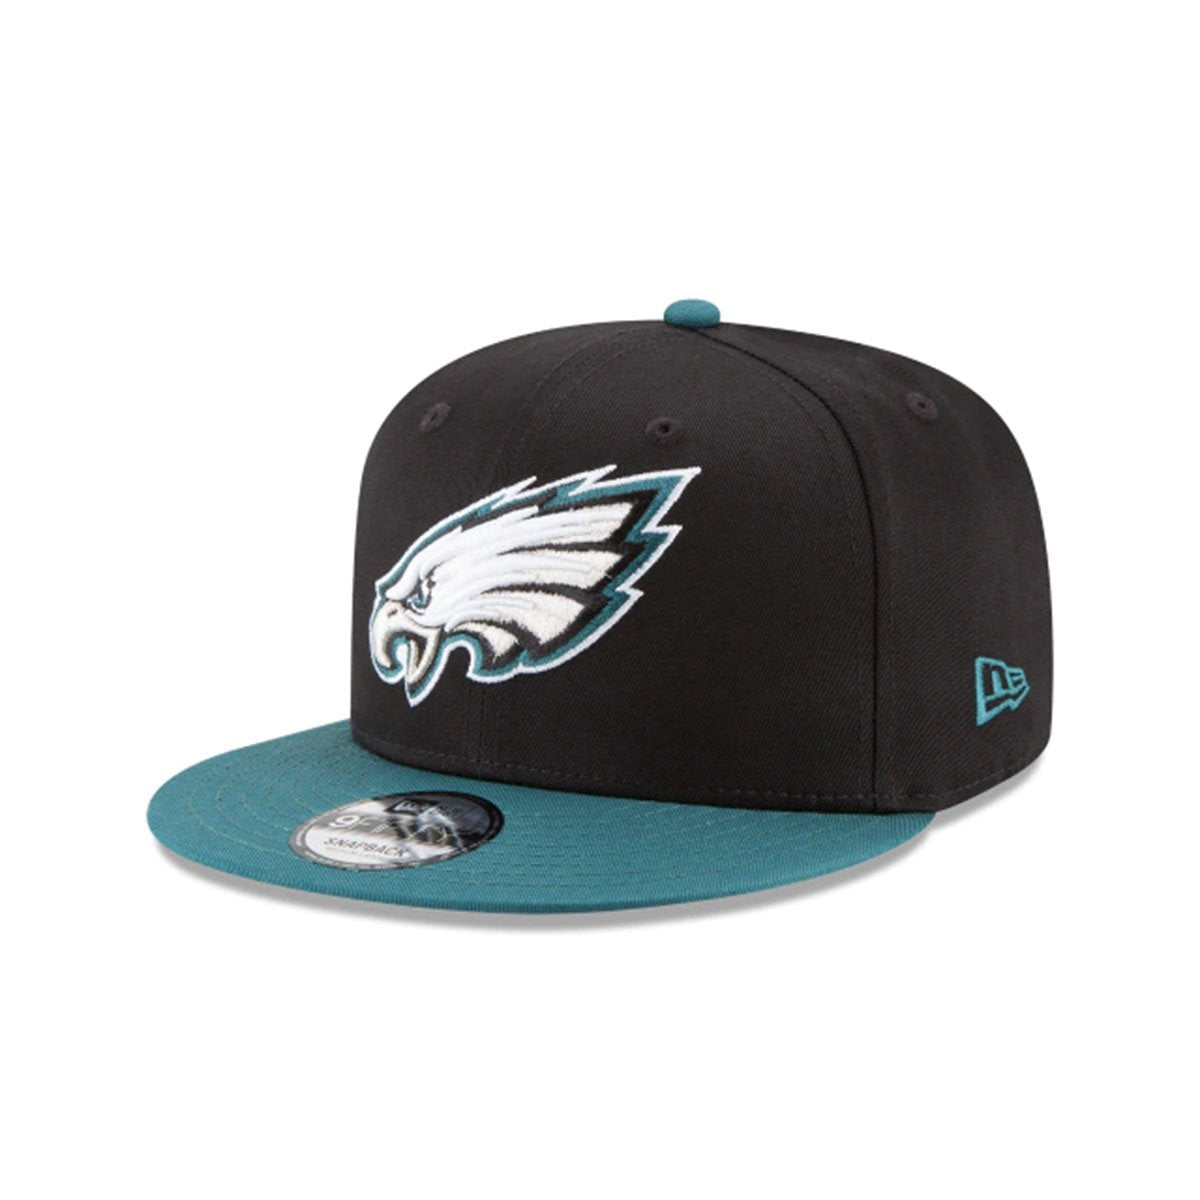 PHILADELPHIA EAGLES 9FIFTY SNAPBACK BLACK/GREEN